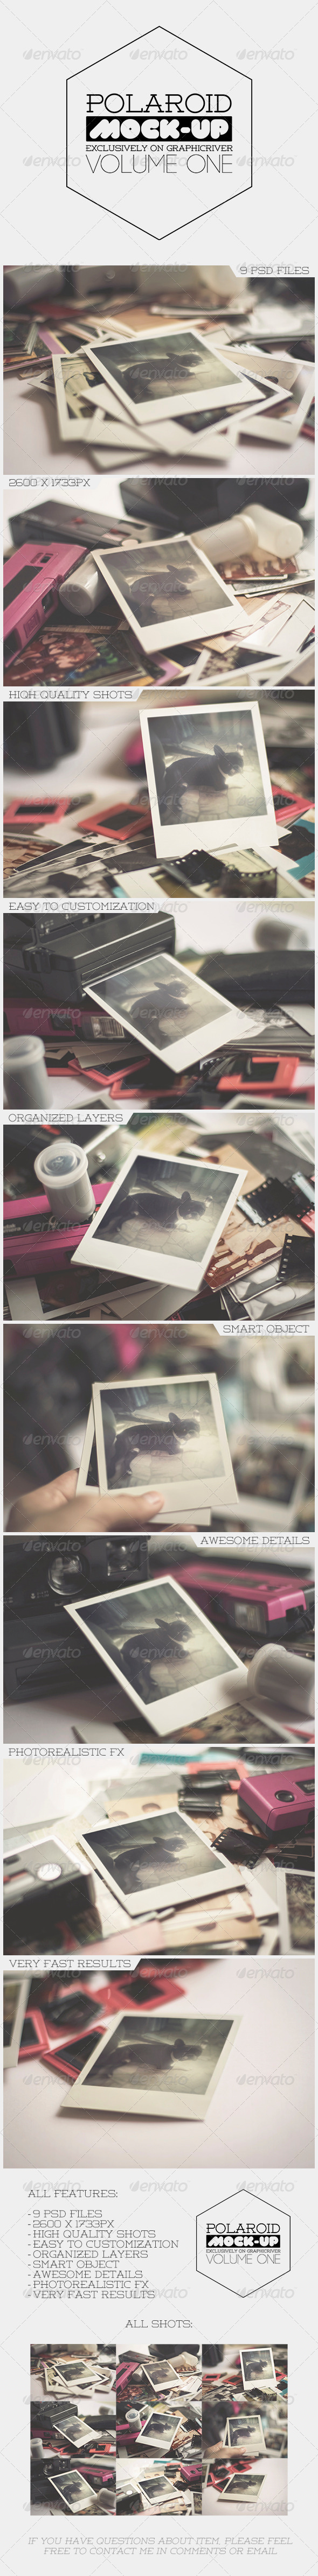 Old Polaroid Photo Frame Mock-Up Vol.1 - Miscellaneous Product Mock-Ups